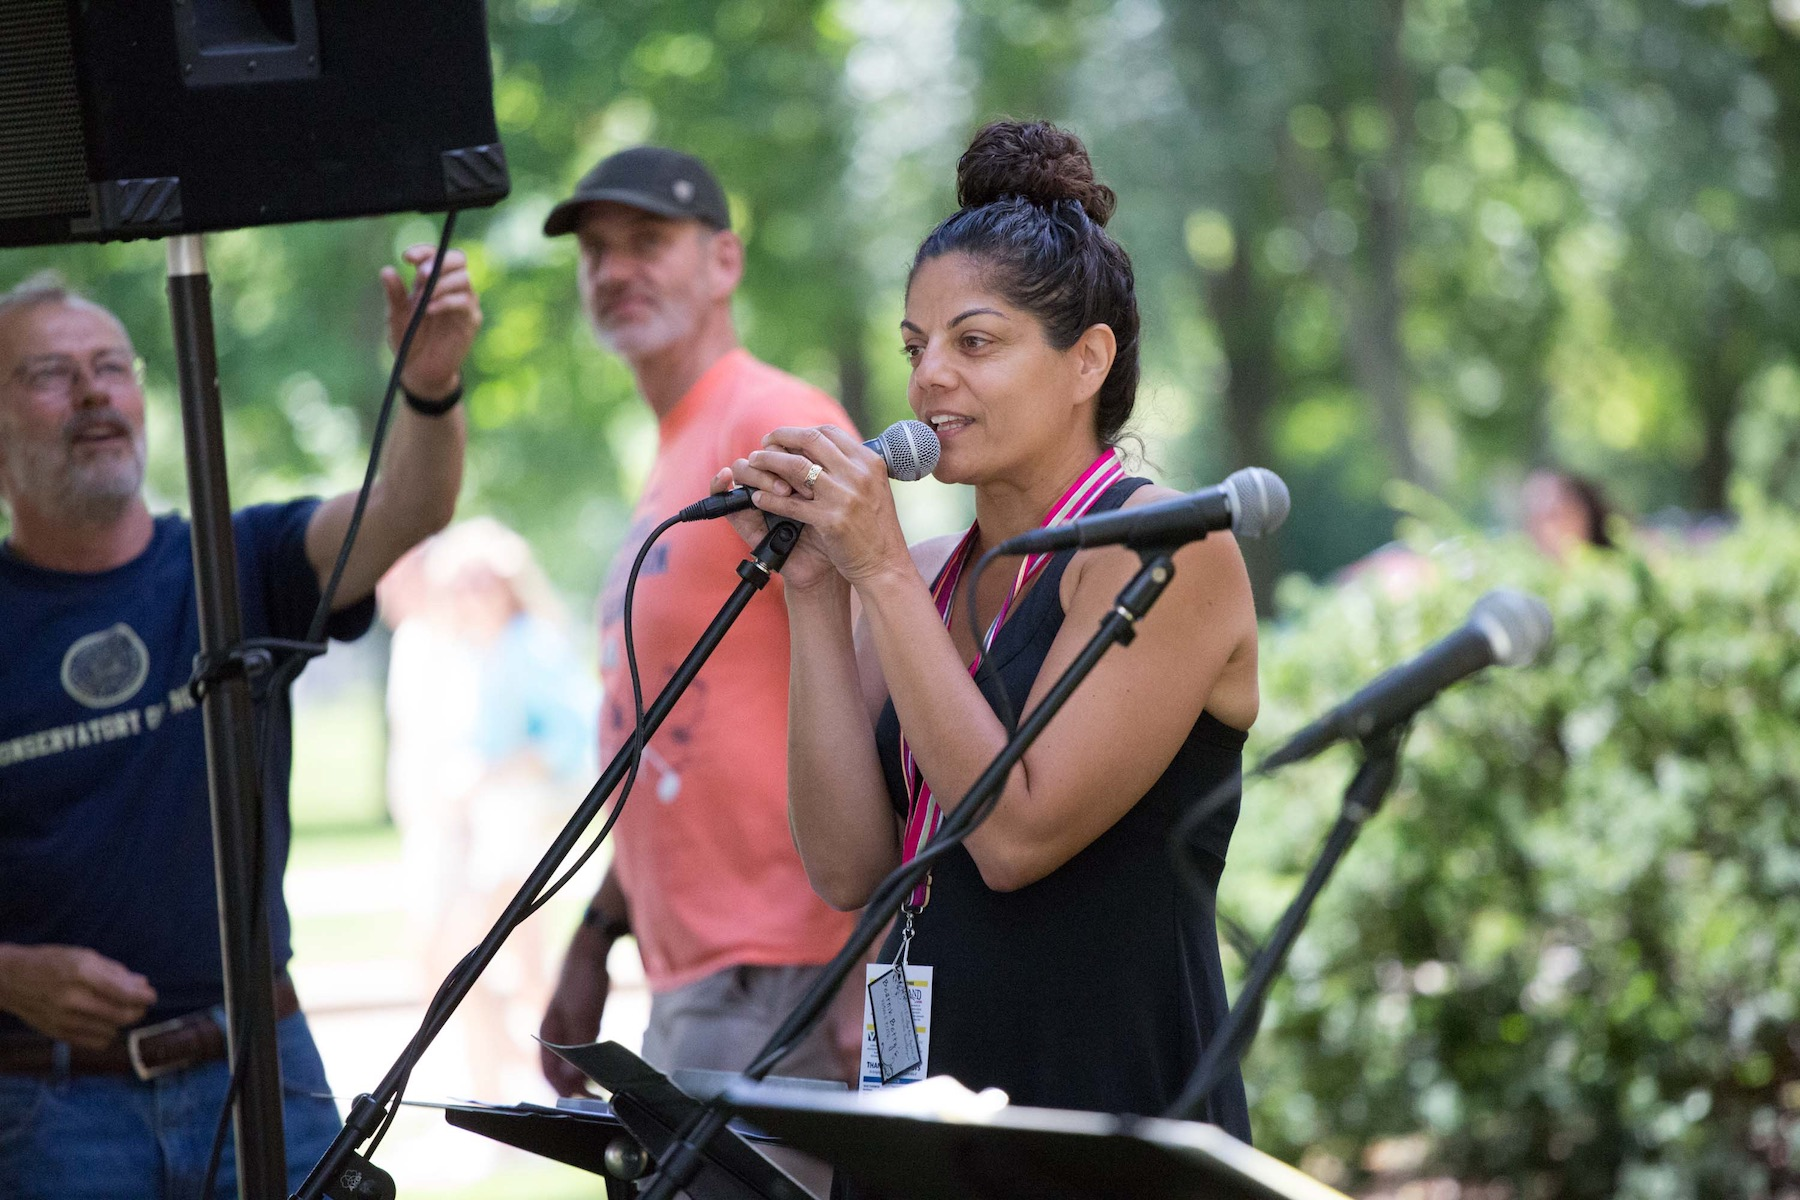 Leila Ramagopal Pertl participates in a sing-along at an earlier Mile of Music festival.